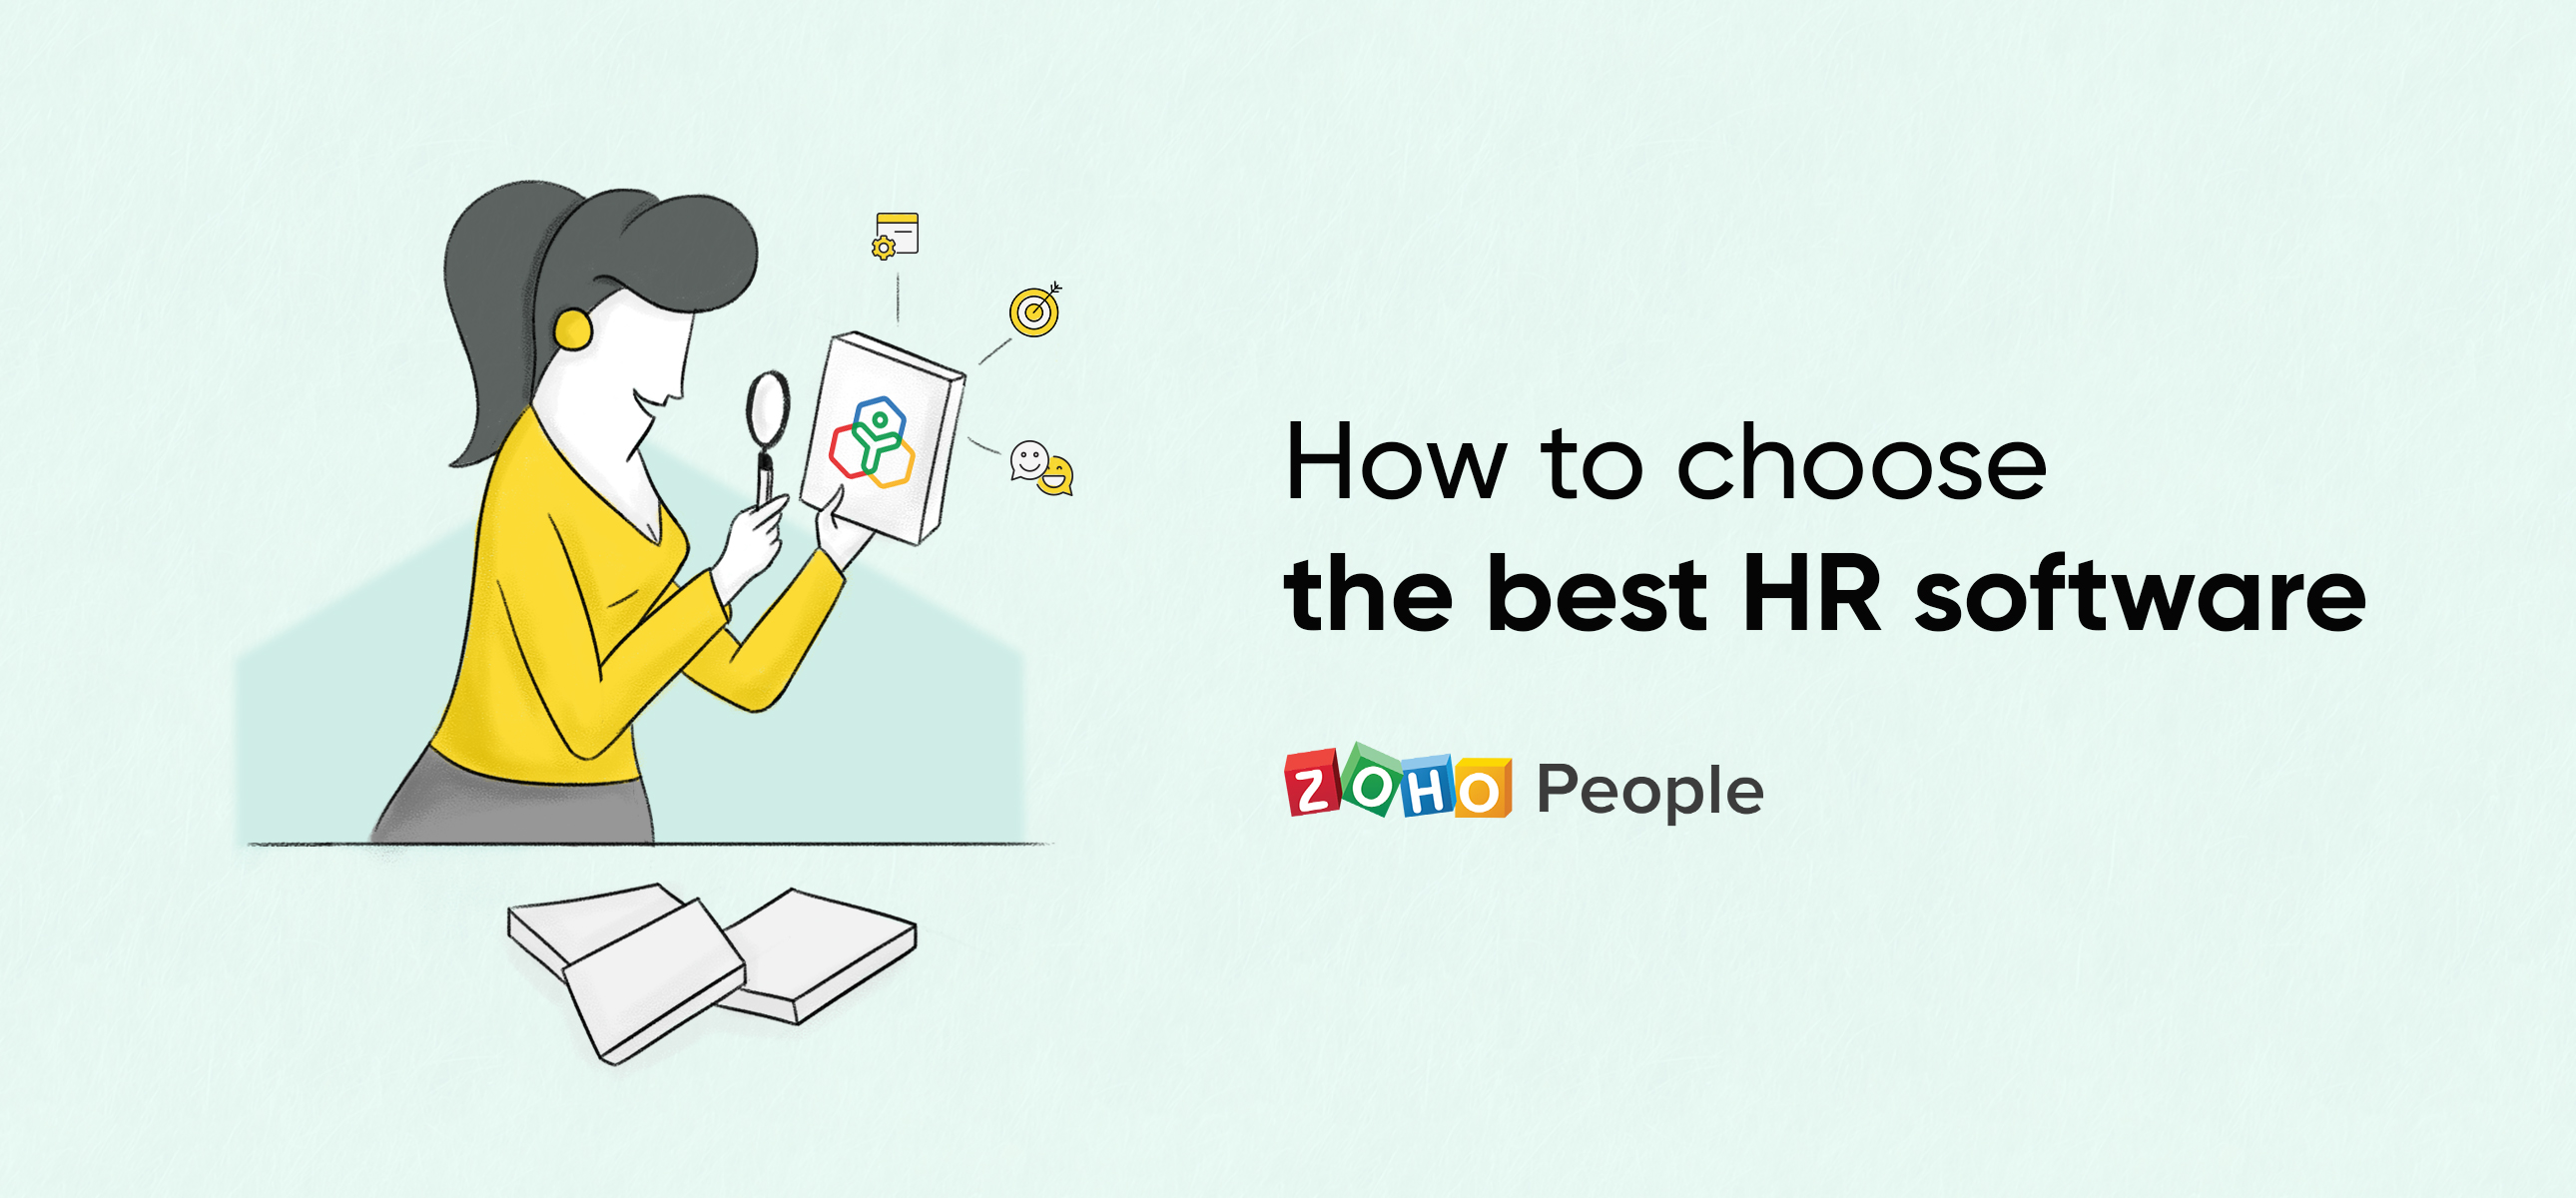 Selecting the best HR software for your organization